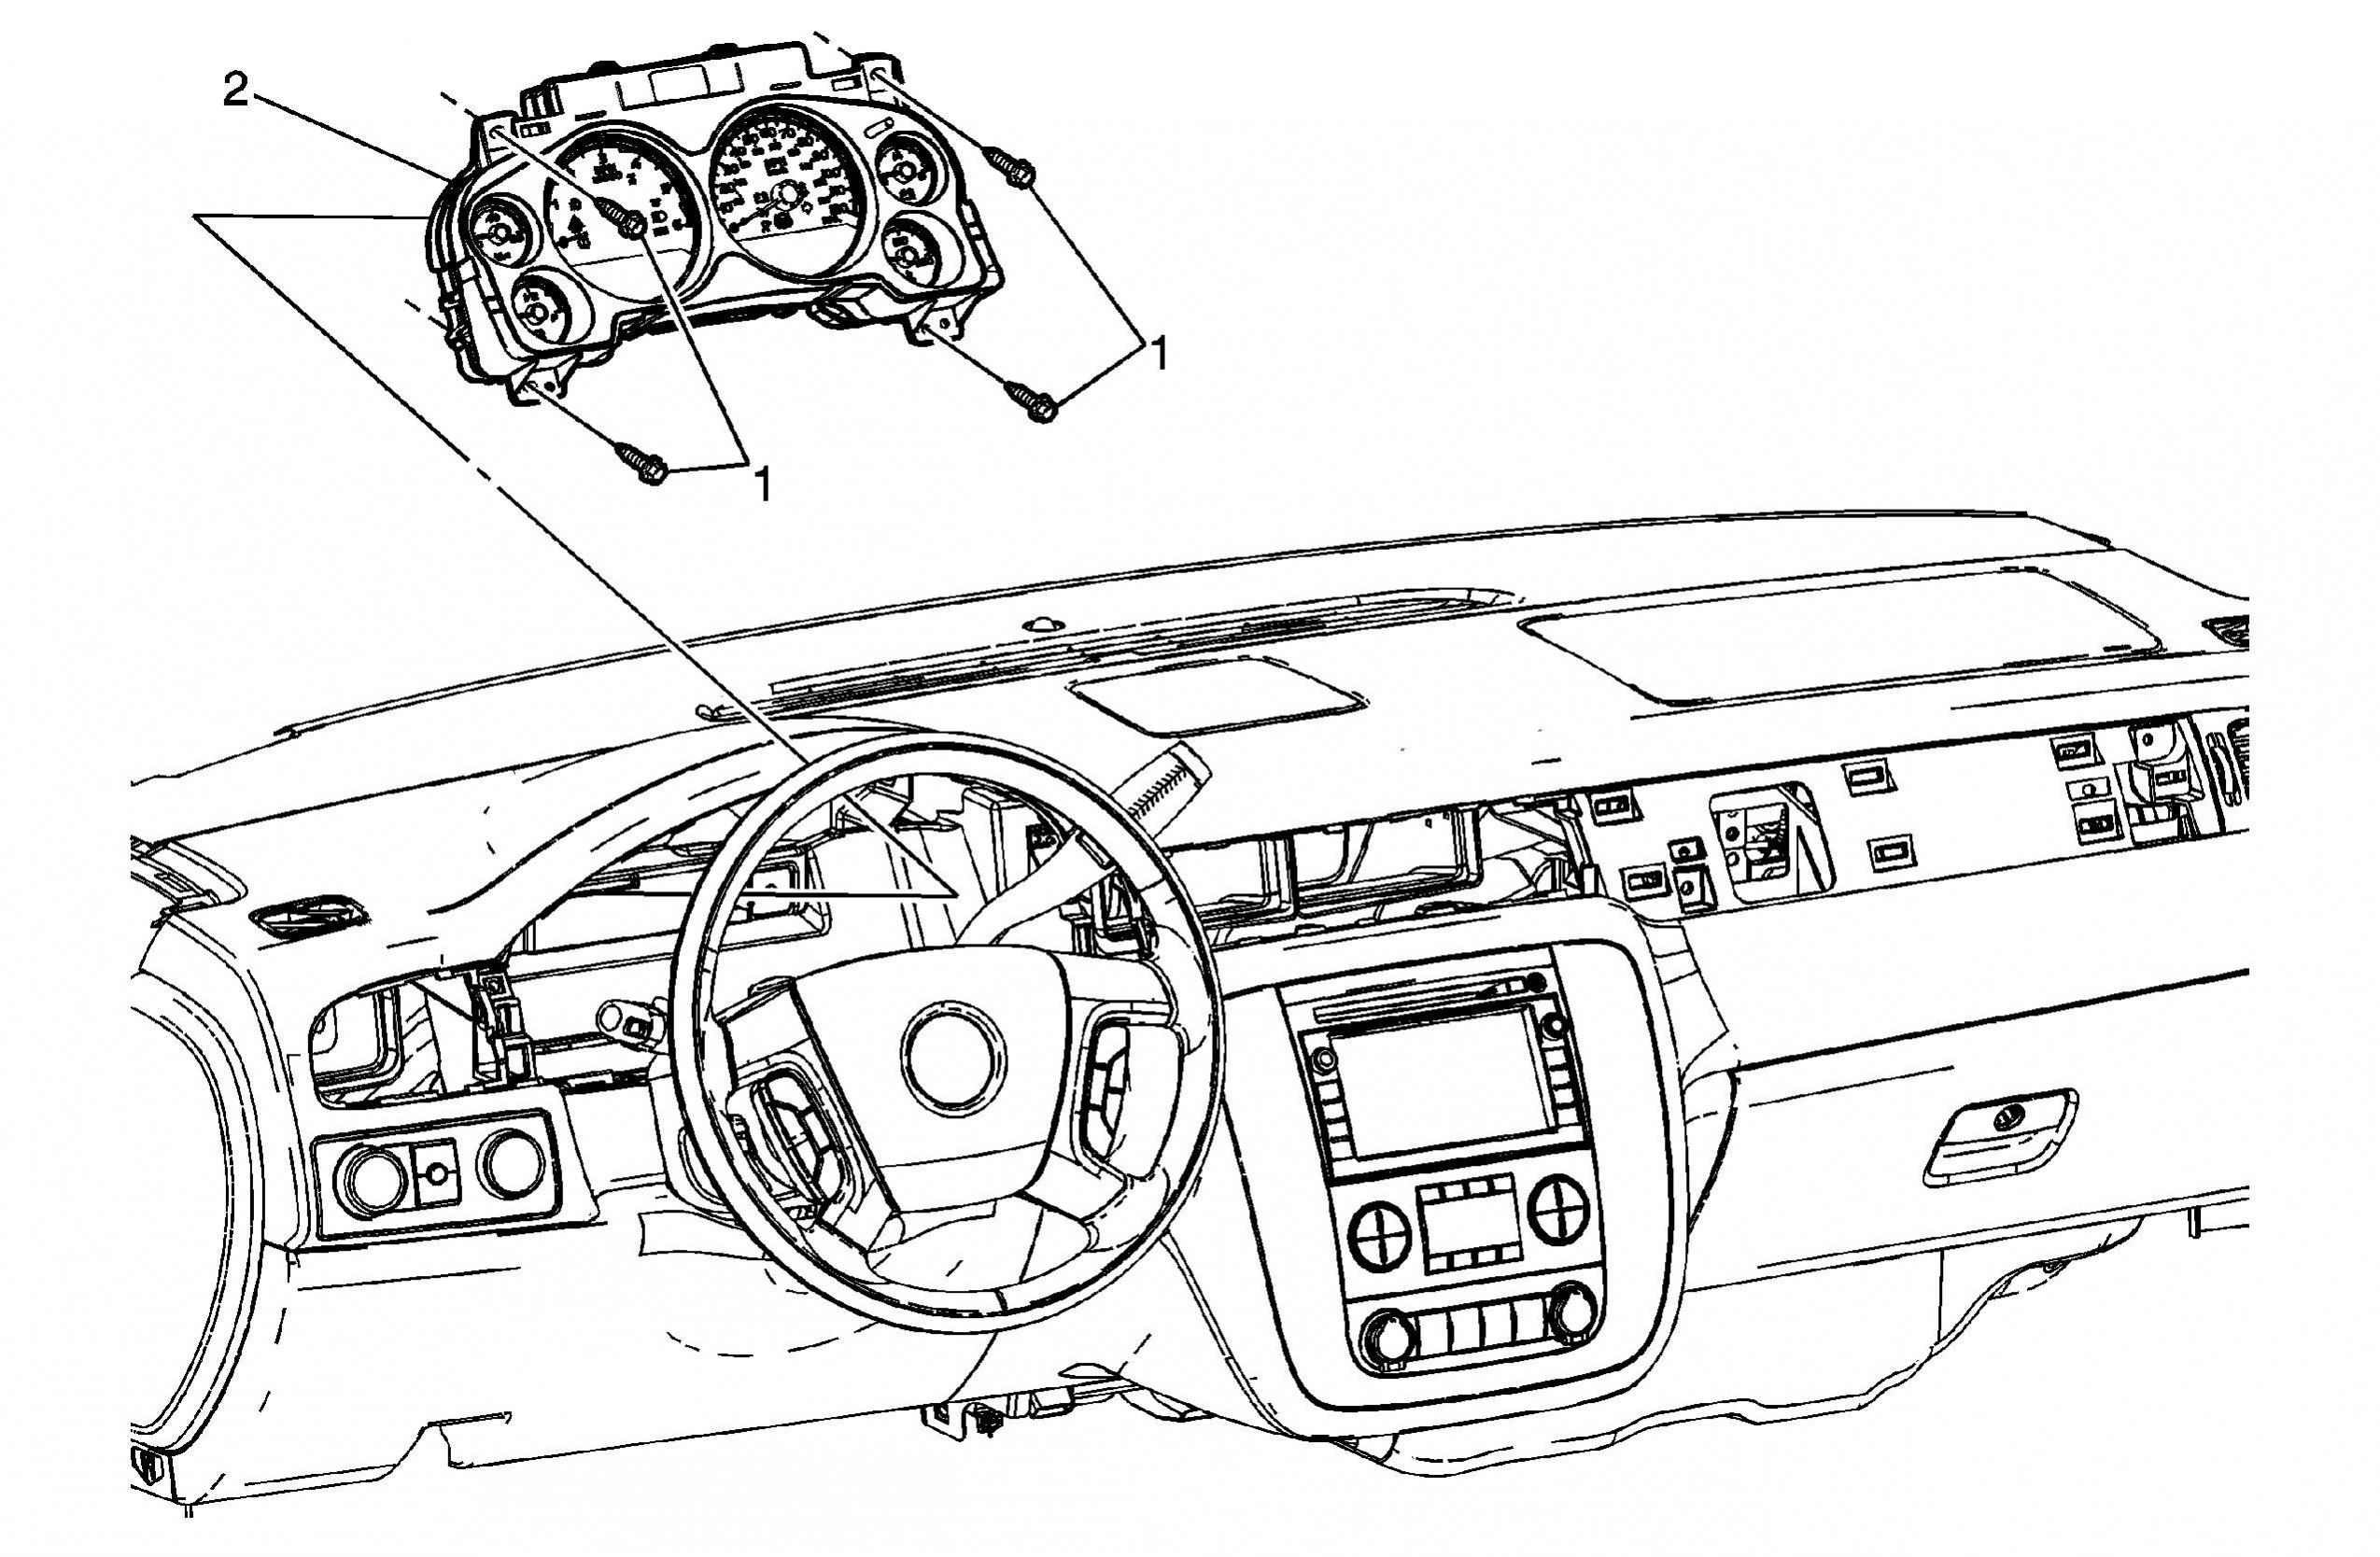 04 Chevy Malibu Instrument Panel Cluster Wiring Diagram